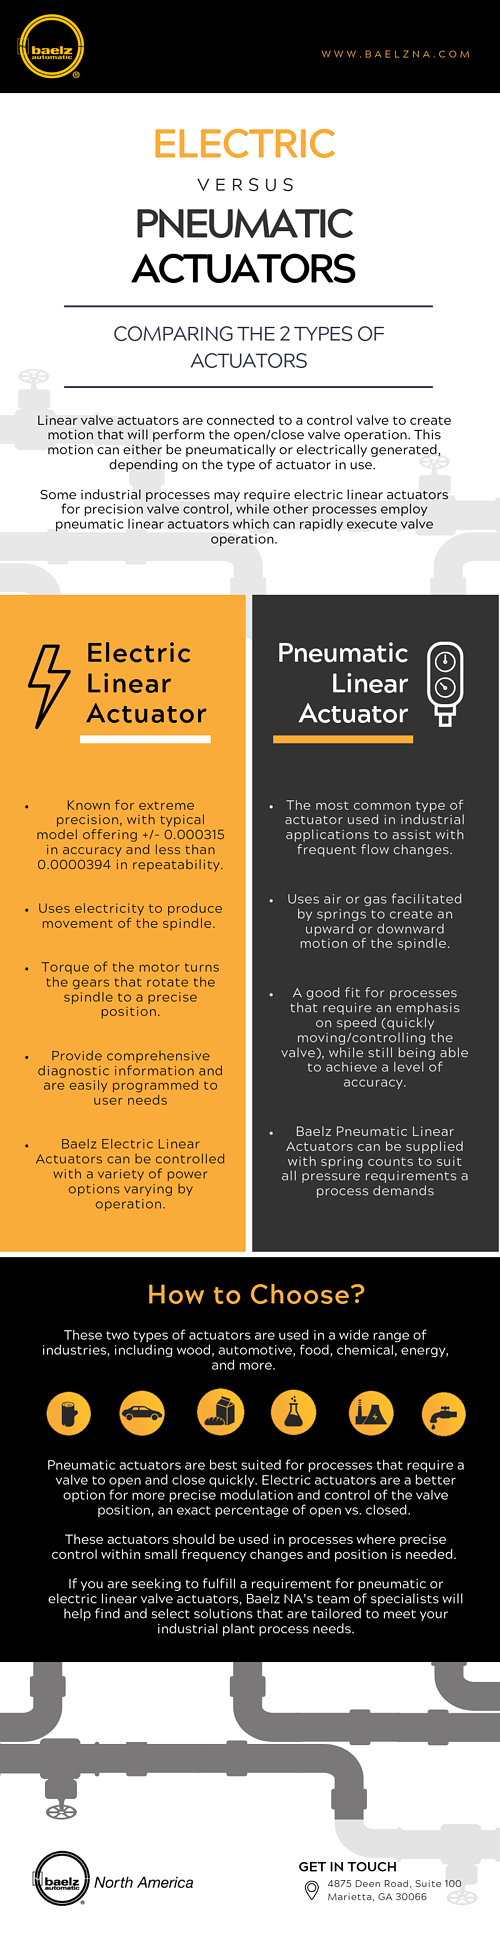 Baelz NA - Electric Linear Actuators vs Pneumatic Actuators Infographic